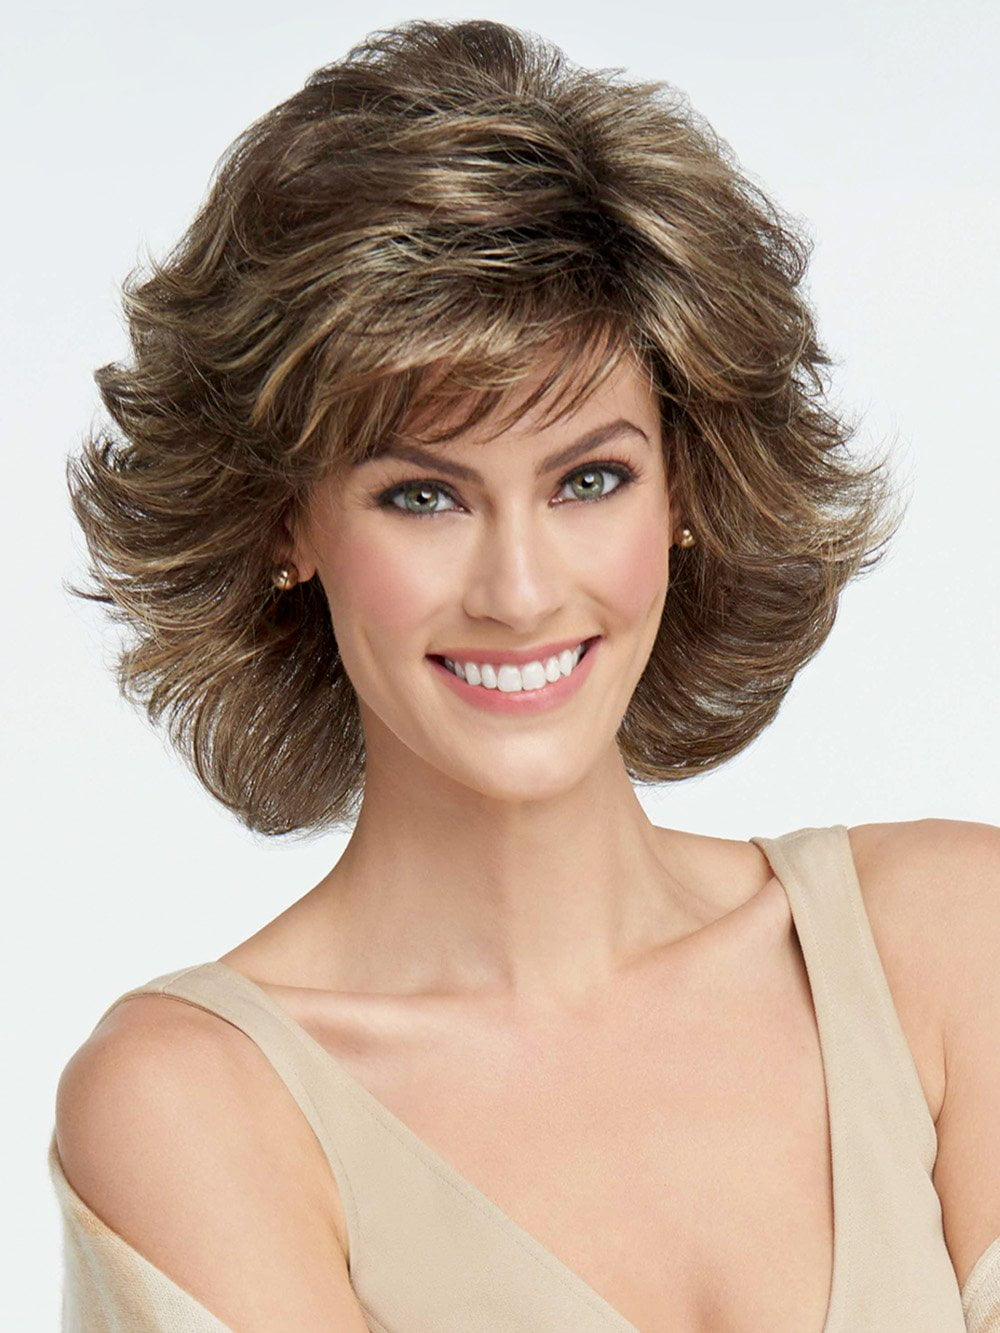 BREEZE by RAQUEL WELCH in SS10 SHADED CHESTNUT | Rich Medium Brown Evenly Blended with Light Brown Highlights and Dark Roots